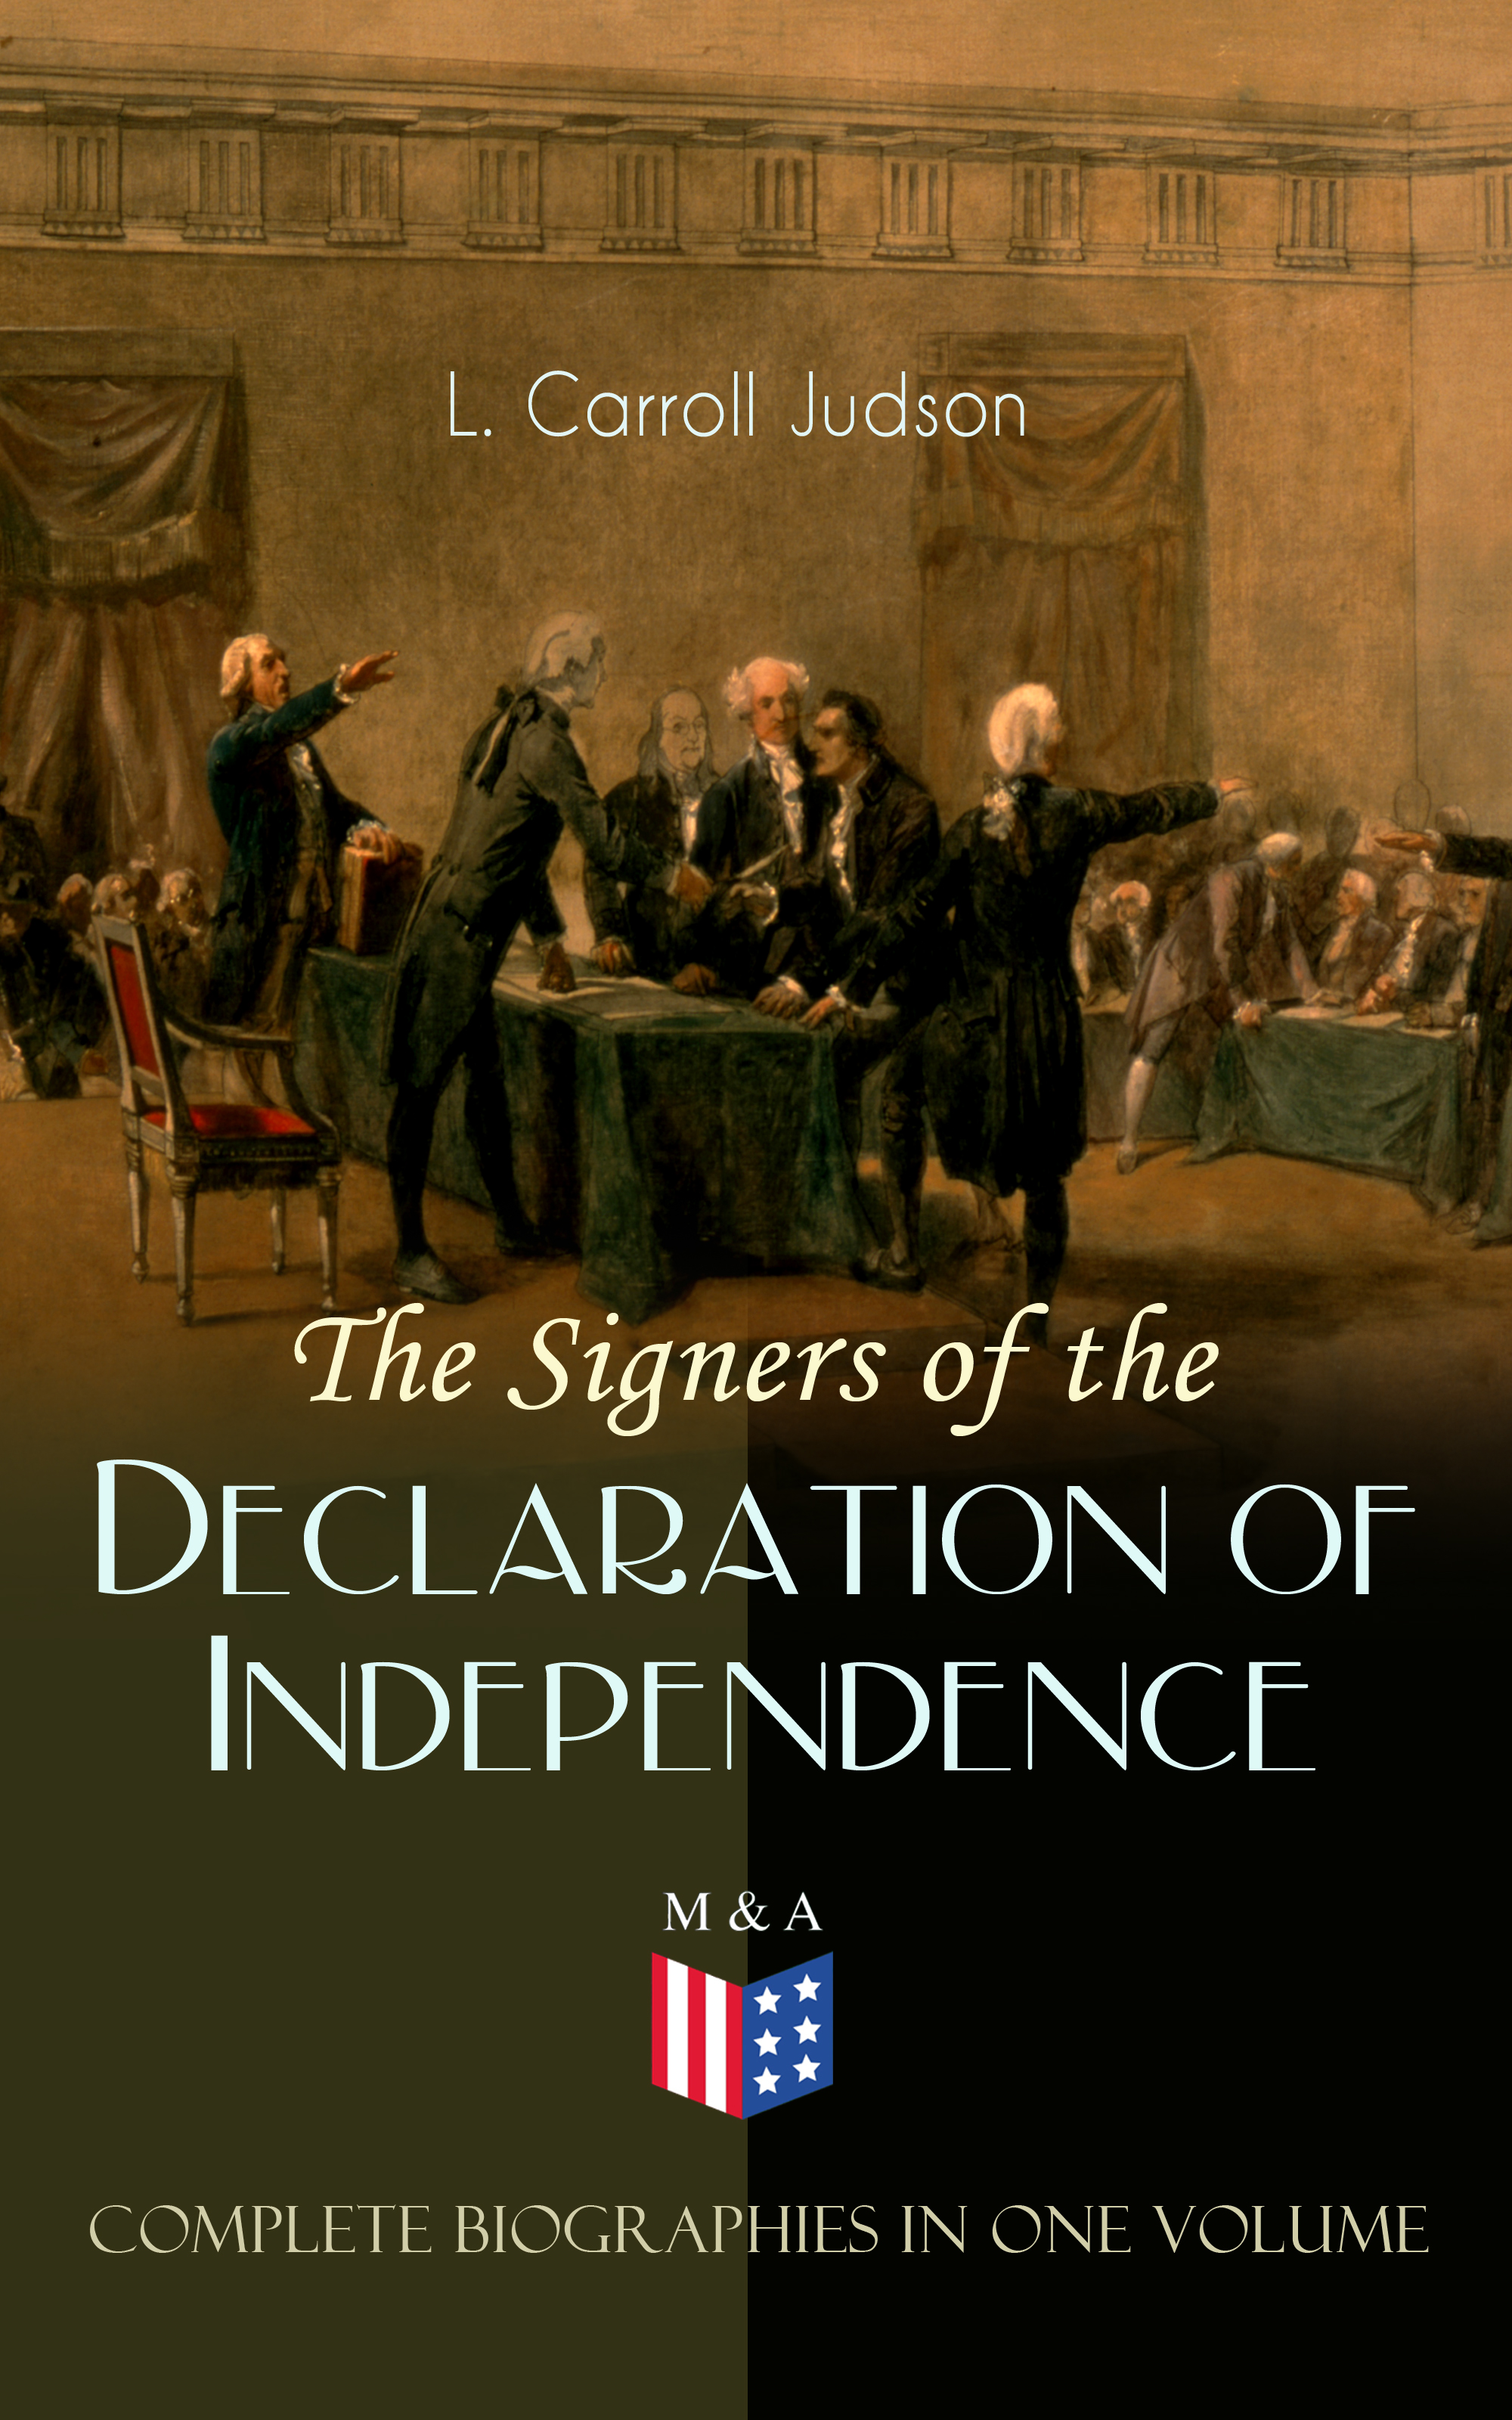 Фото - L. Carroll Judson The Signers of the Declaration of Independence - Complete Biographies in One Volume томас джефферсон the declaration of independence of the united states of america